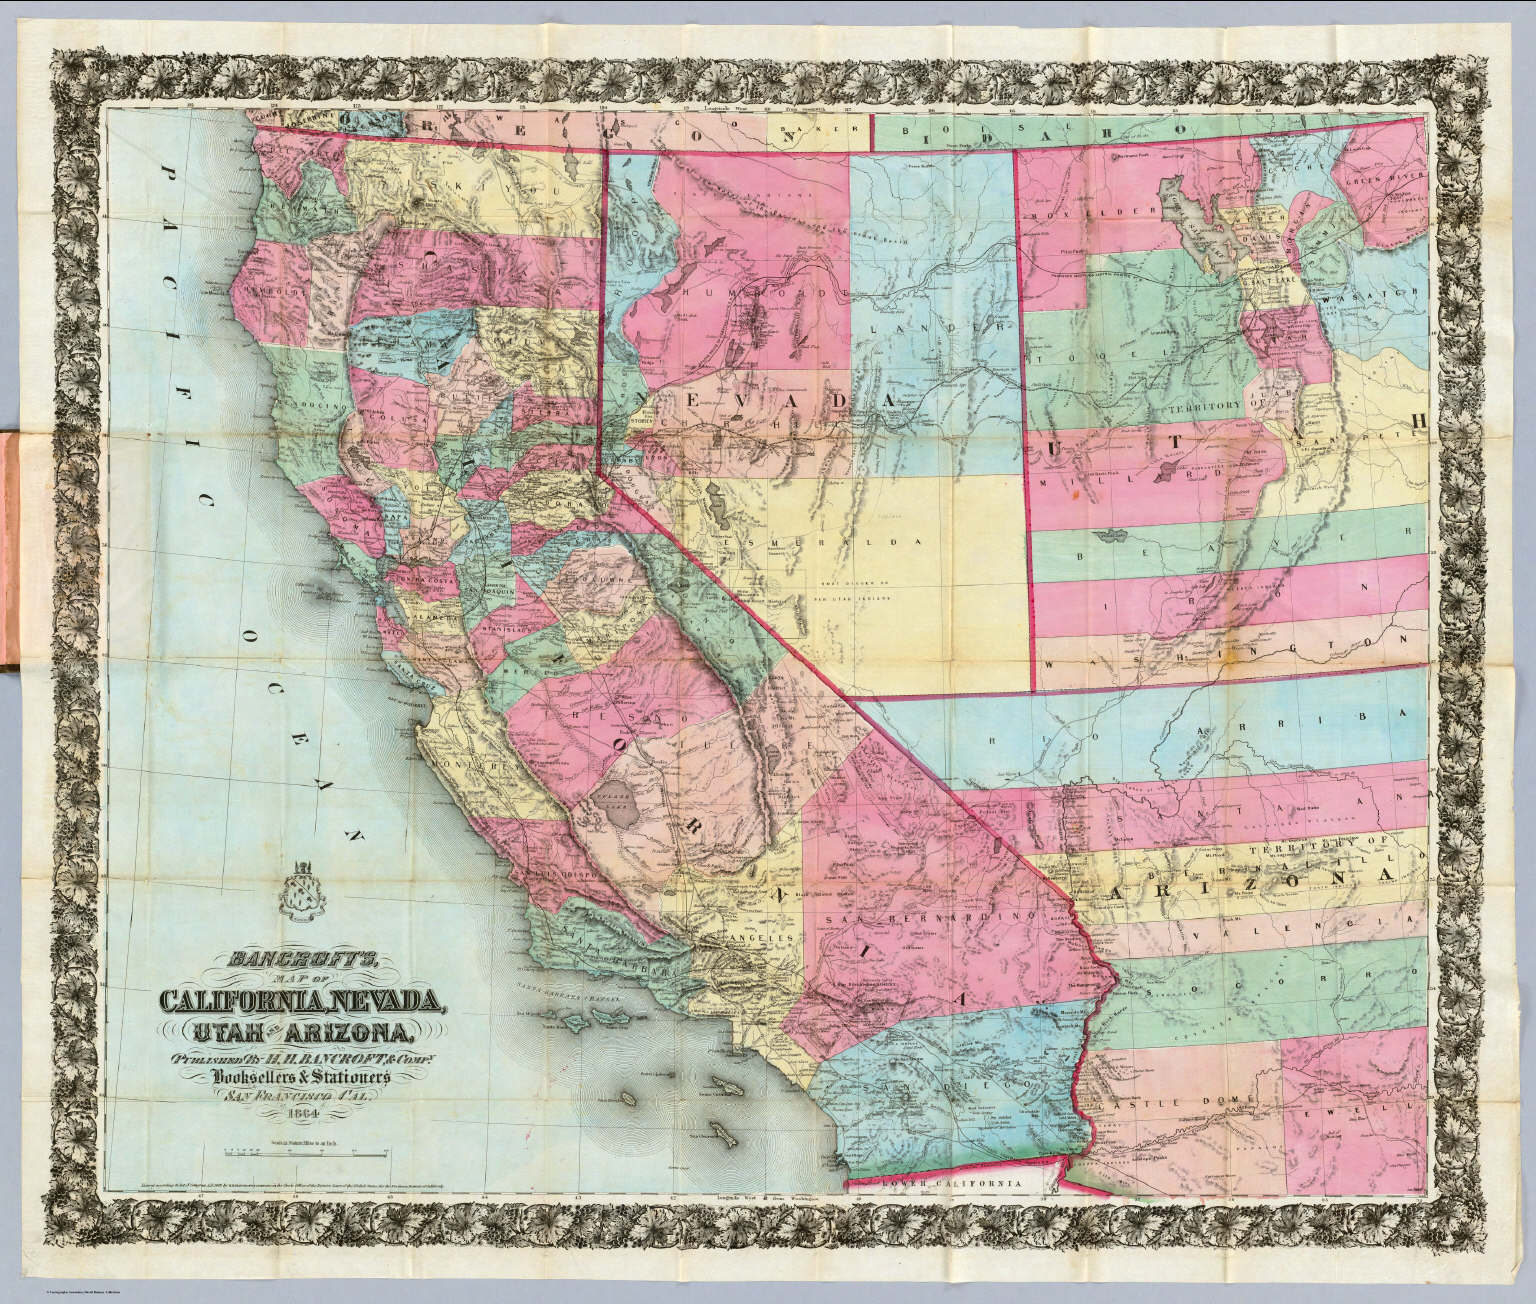 Map Of California Nevada Utah And Arizona Bancroft HH